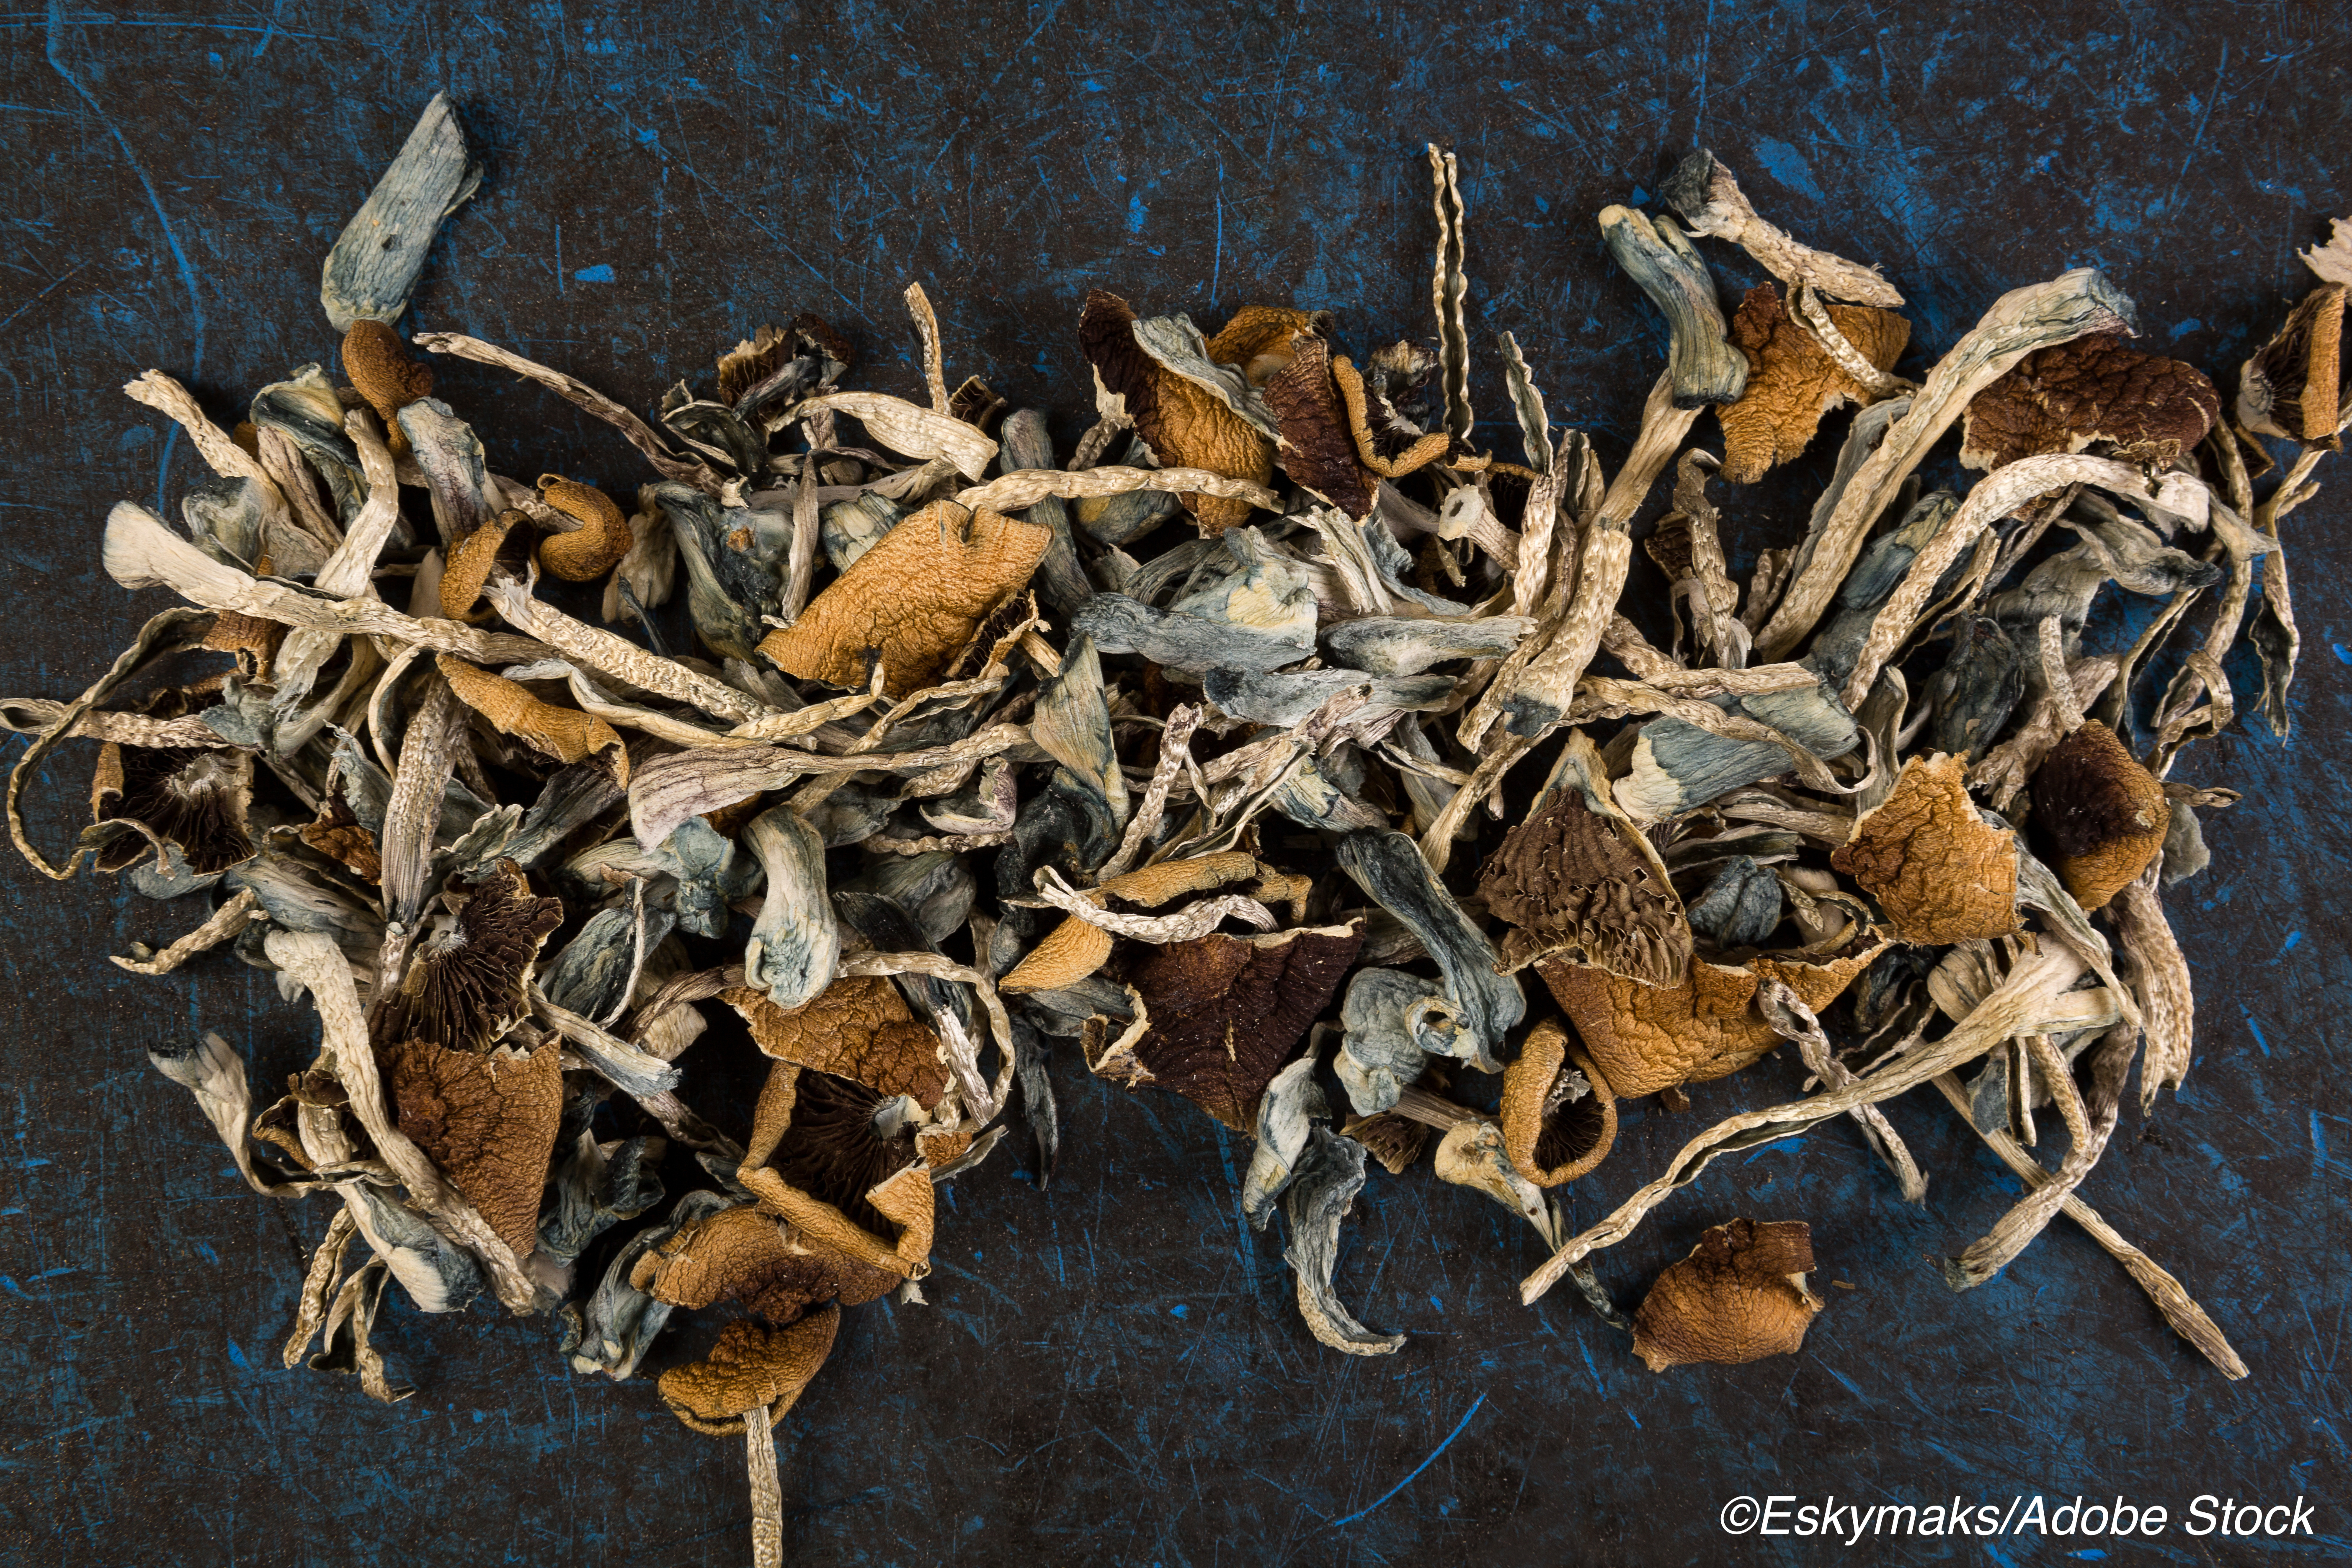 Psilocybin-Assisted Psychotherapy Effective for Major Depressive Disorder